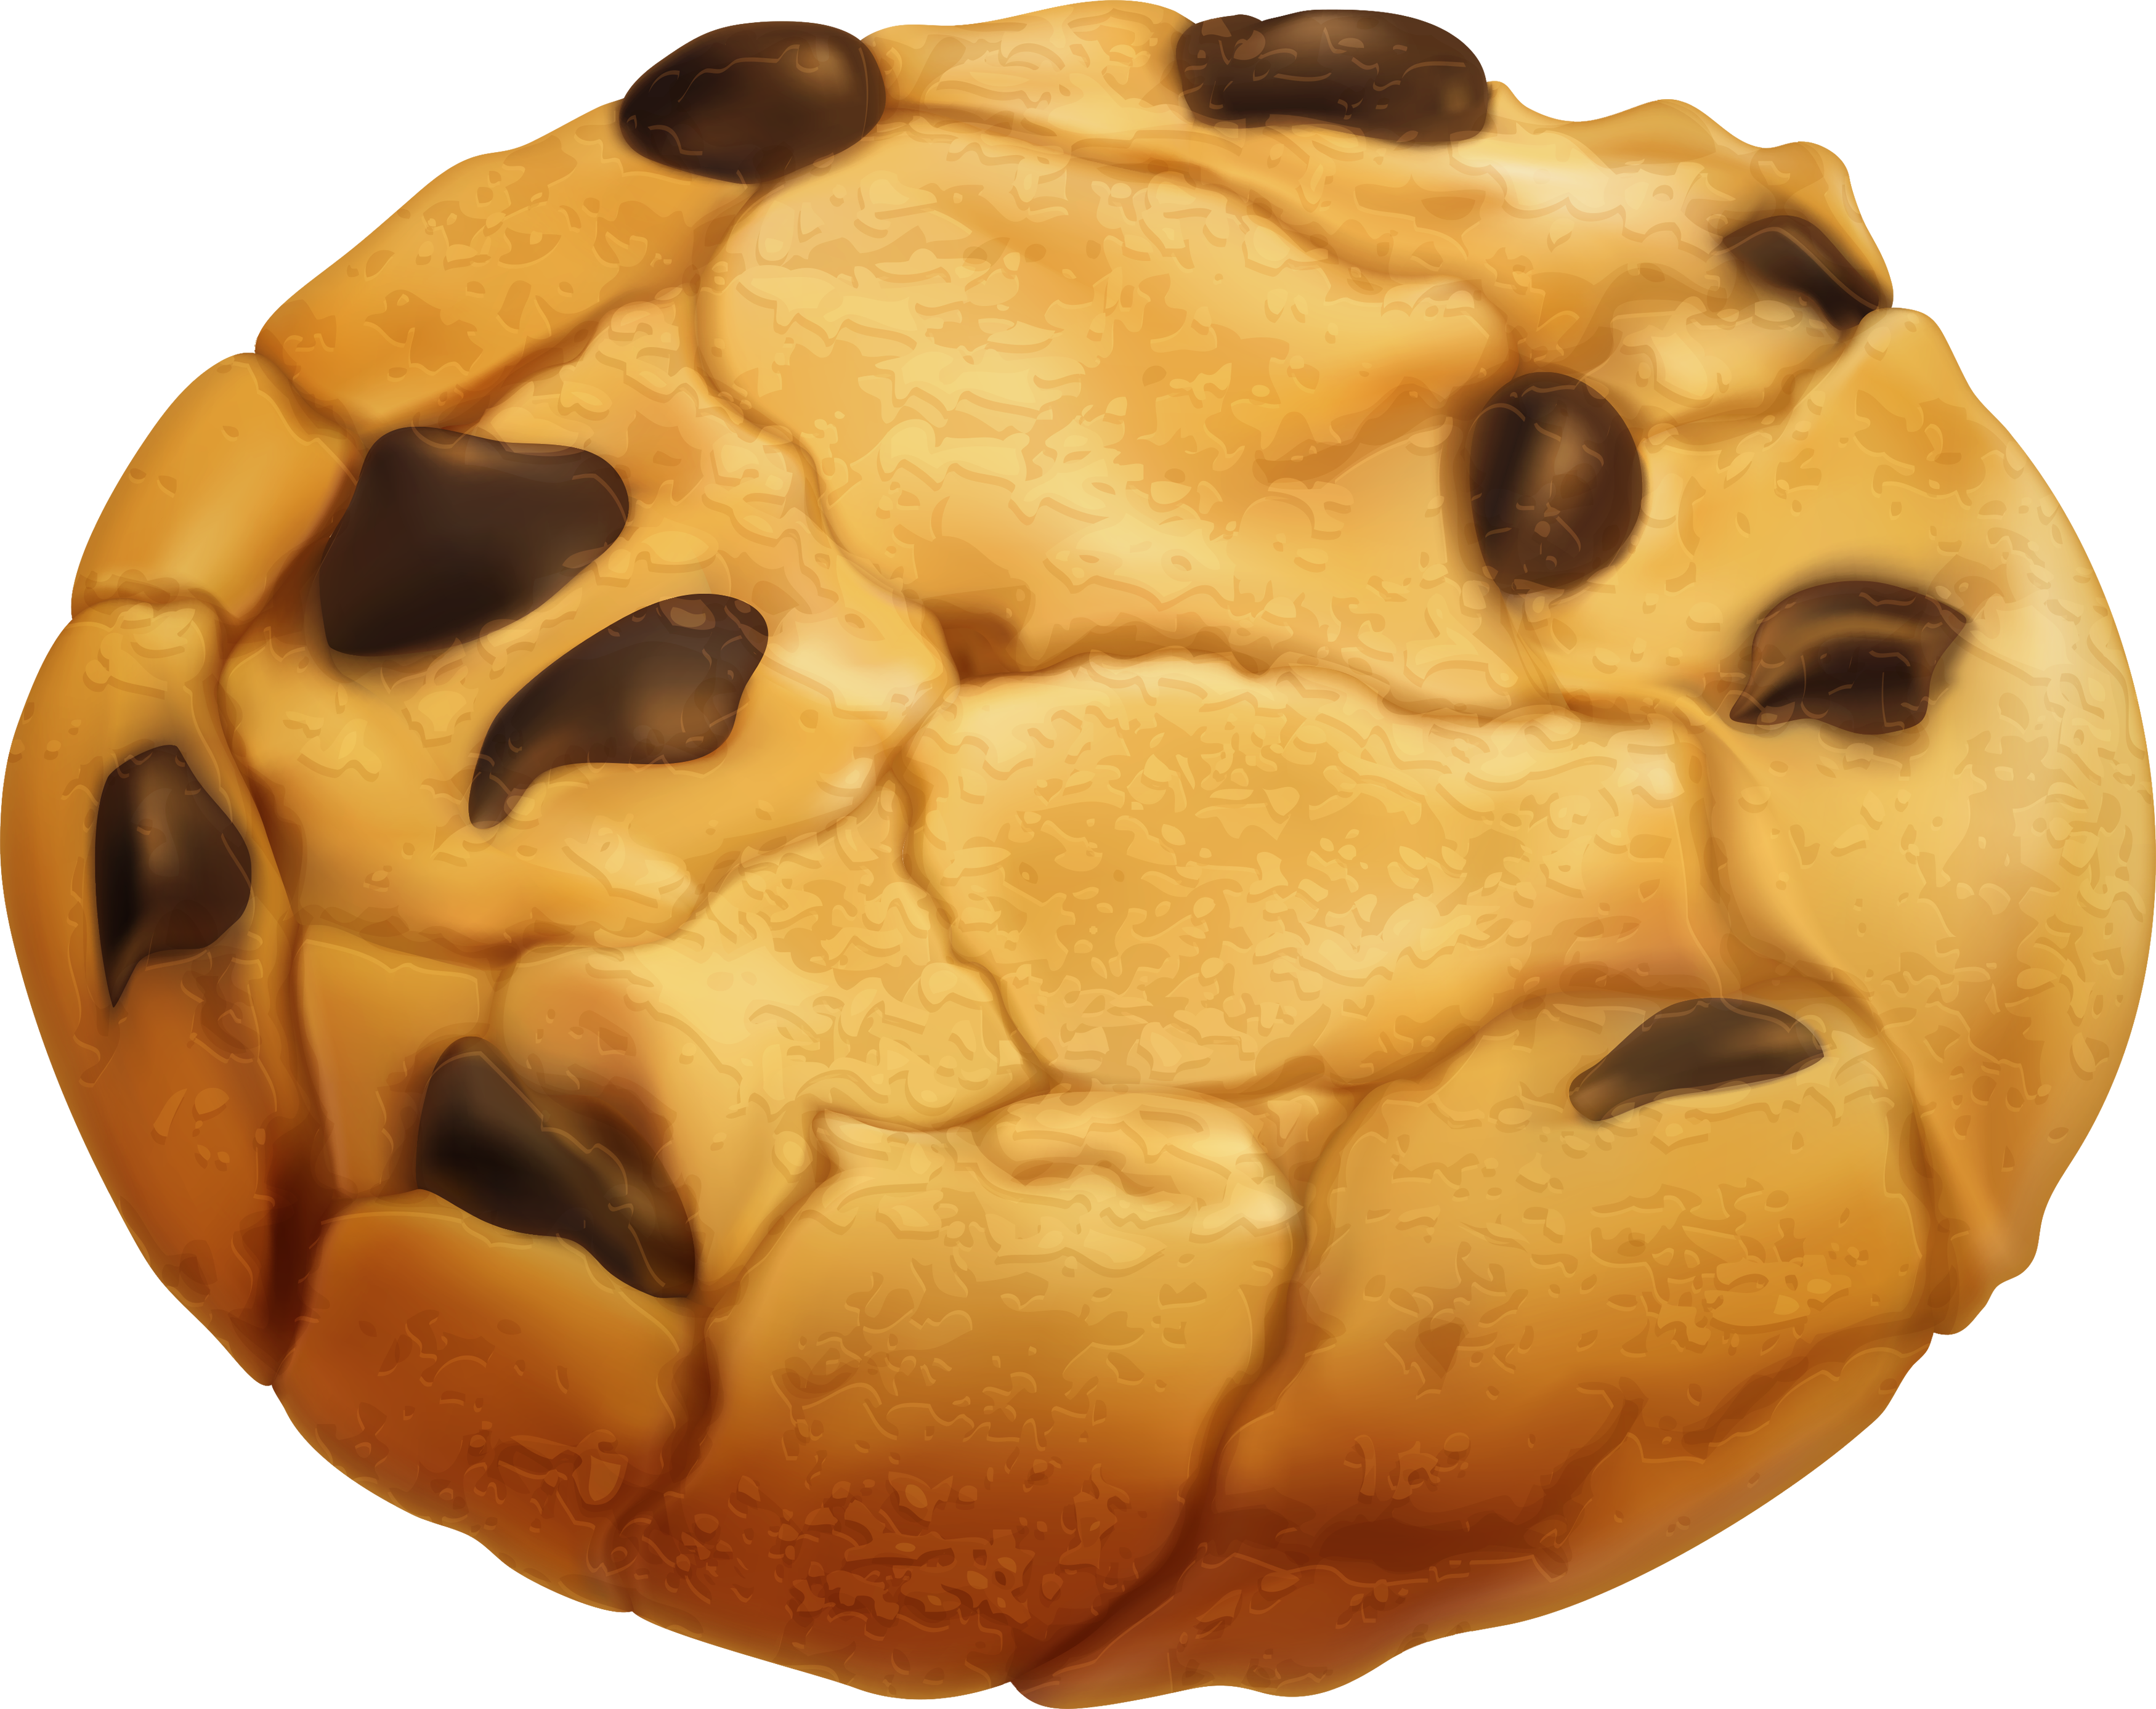 Food clipart png. Cookie images